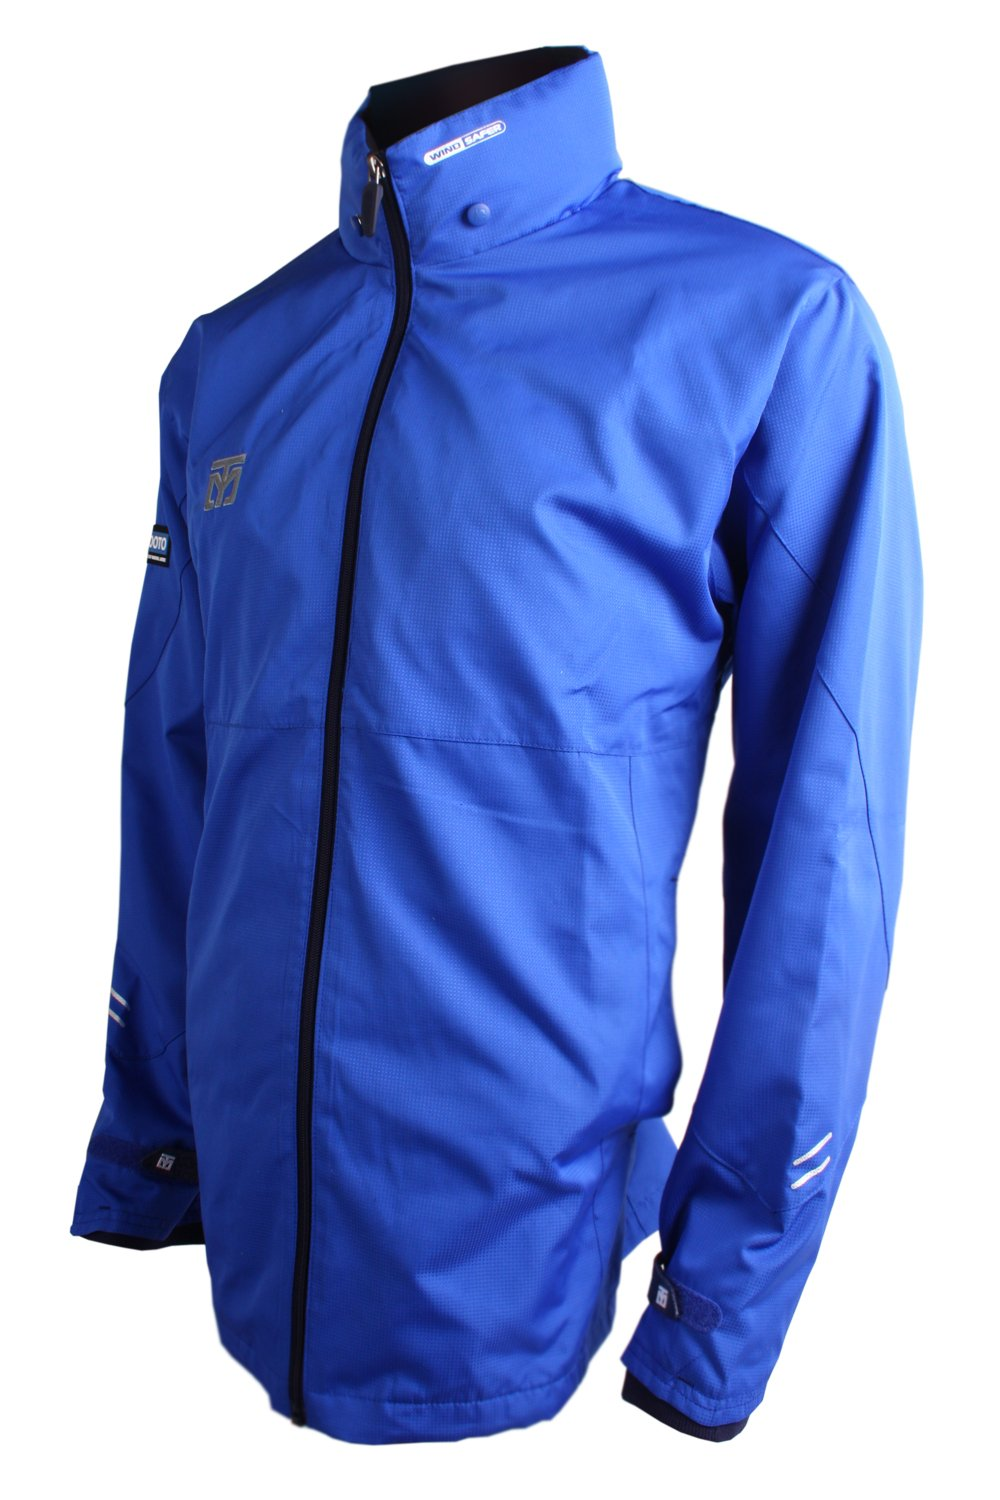 Mooto Wings Wind Breaker 4 Color Jacket Training TaeKwonDo 4.26ft to 6.88ft (Blue, 190(180cm-190cm or 5.90ft-6.23ft)) by Mooto